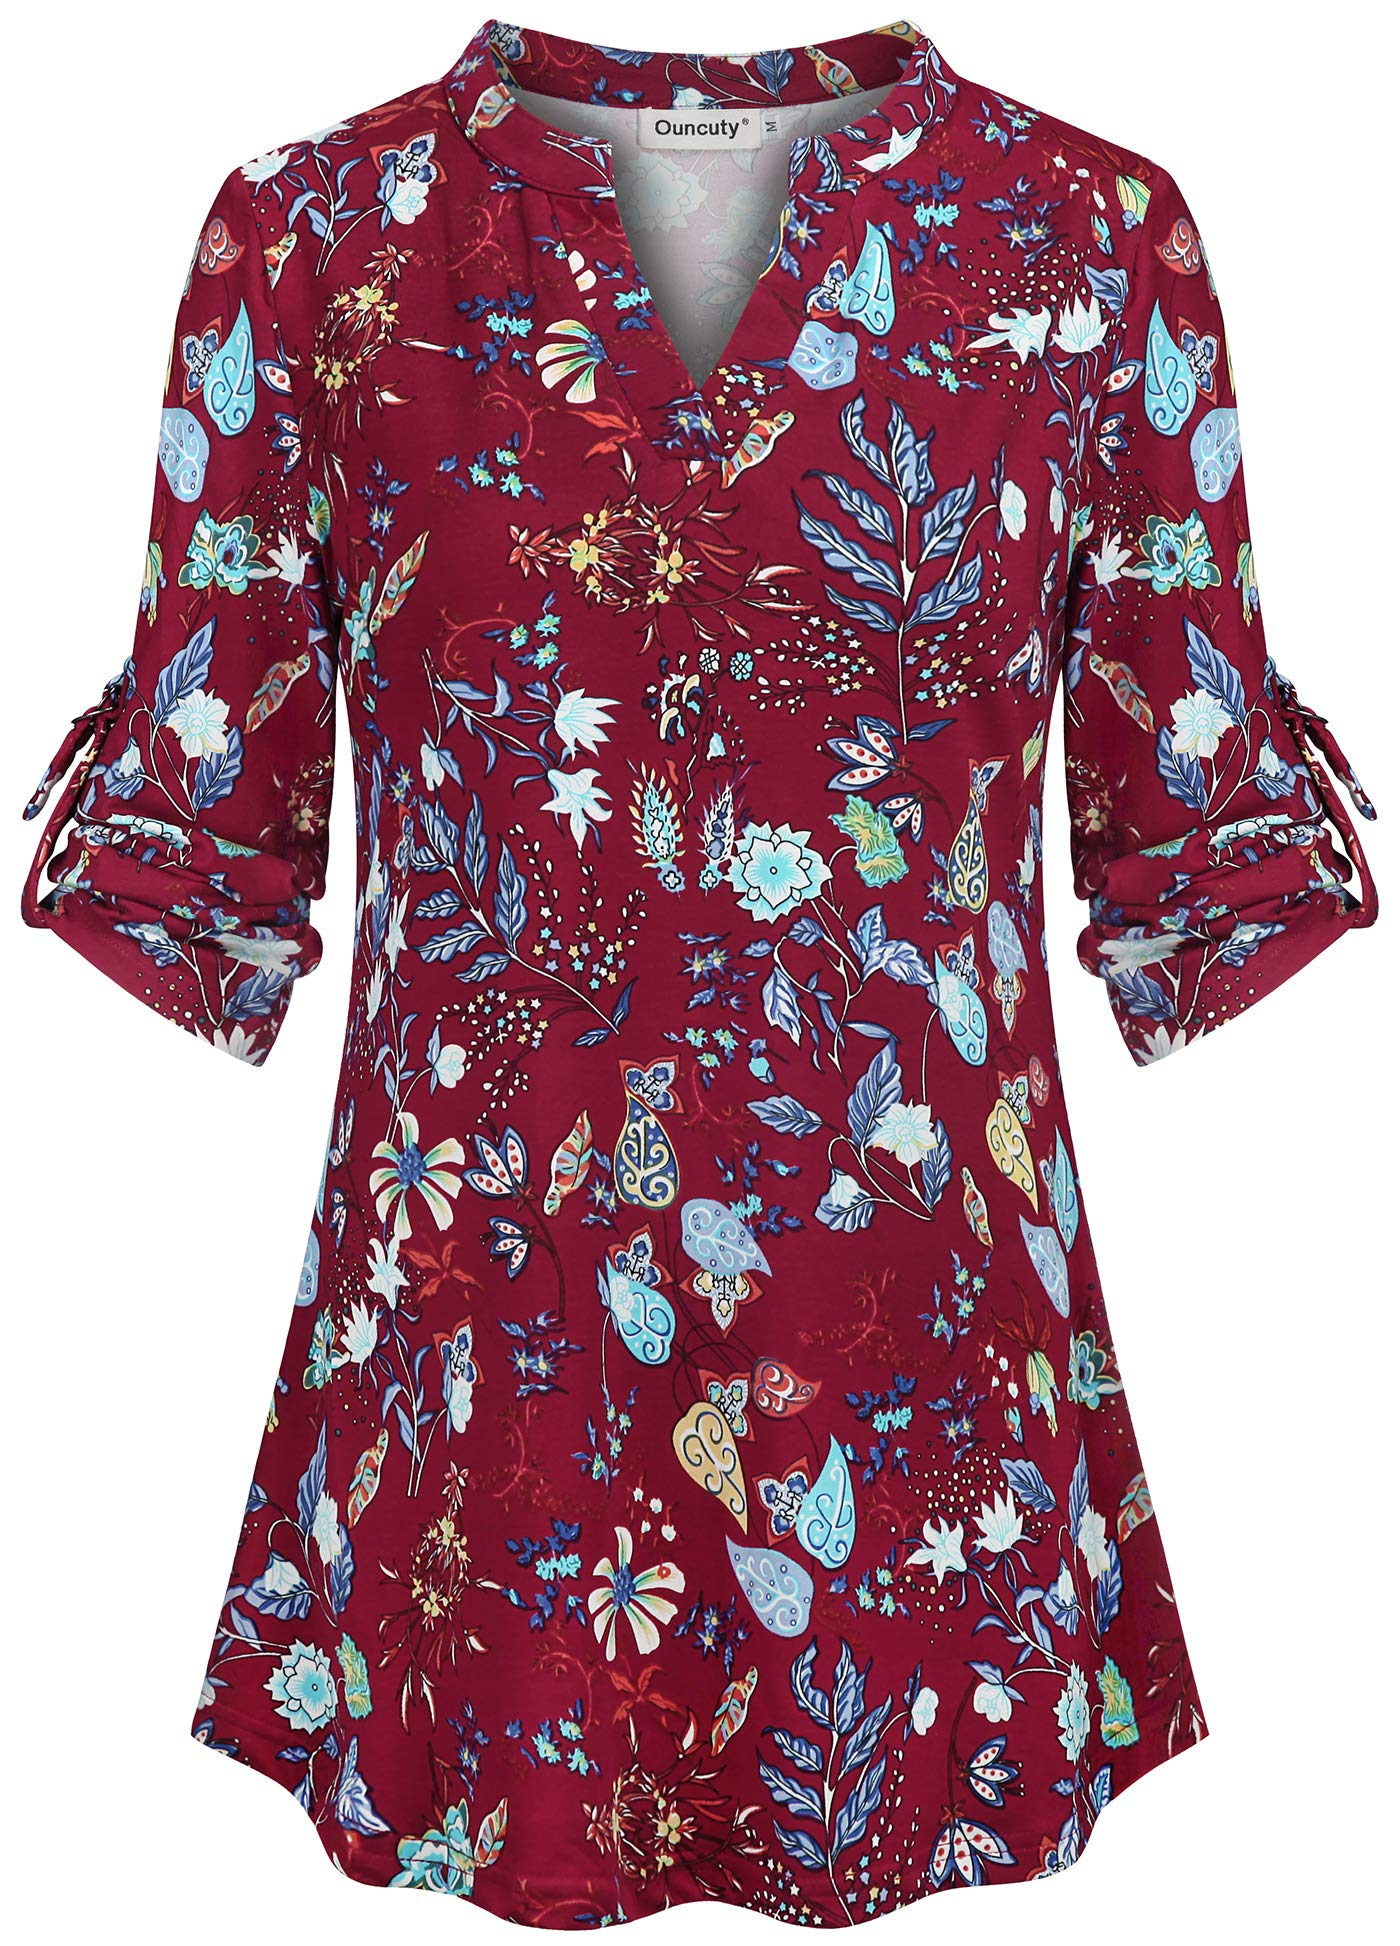 Ouncuty Womens V Neck Casual Flowy Blouses Shirts 3/4 Sleeve Floral Tunic Tops